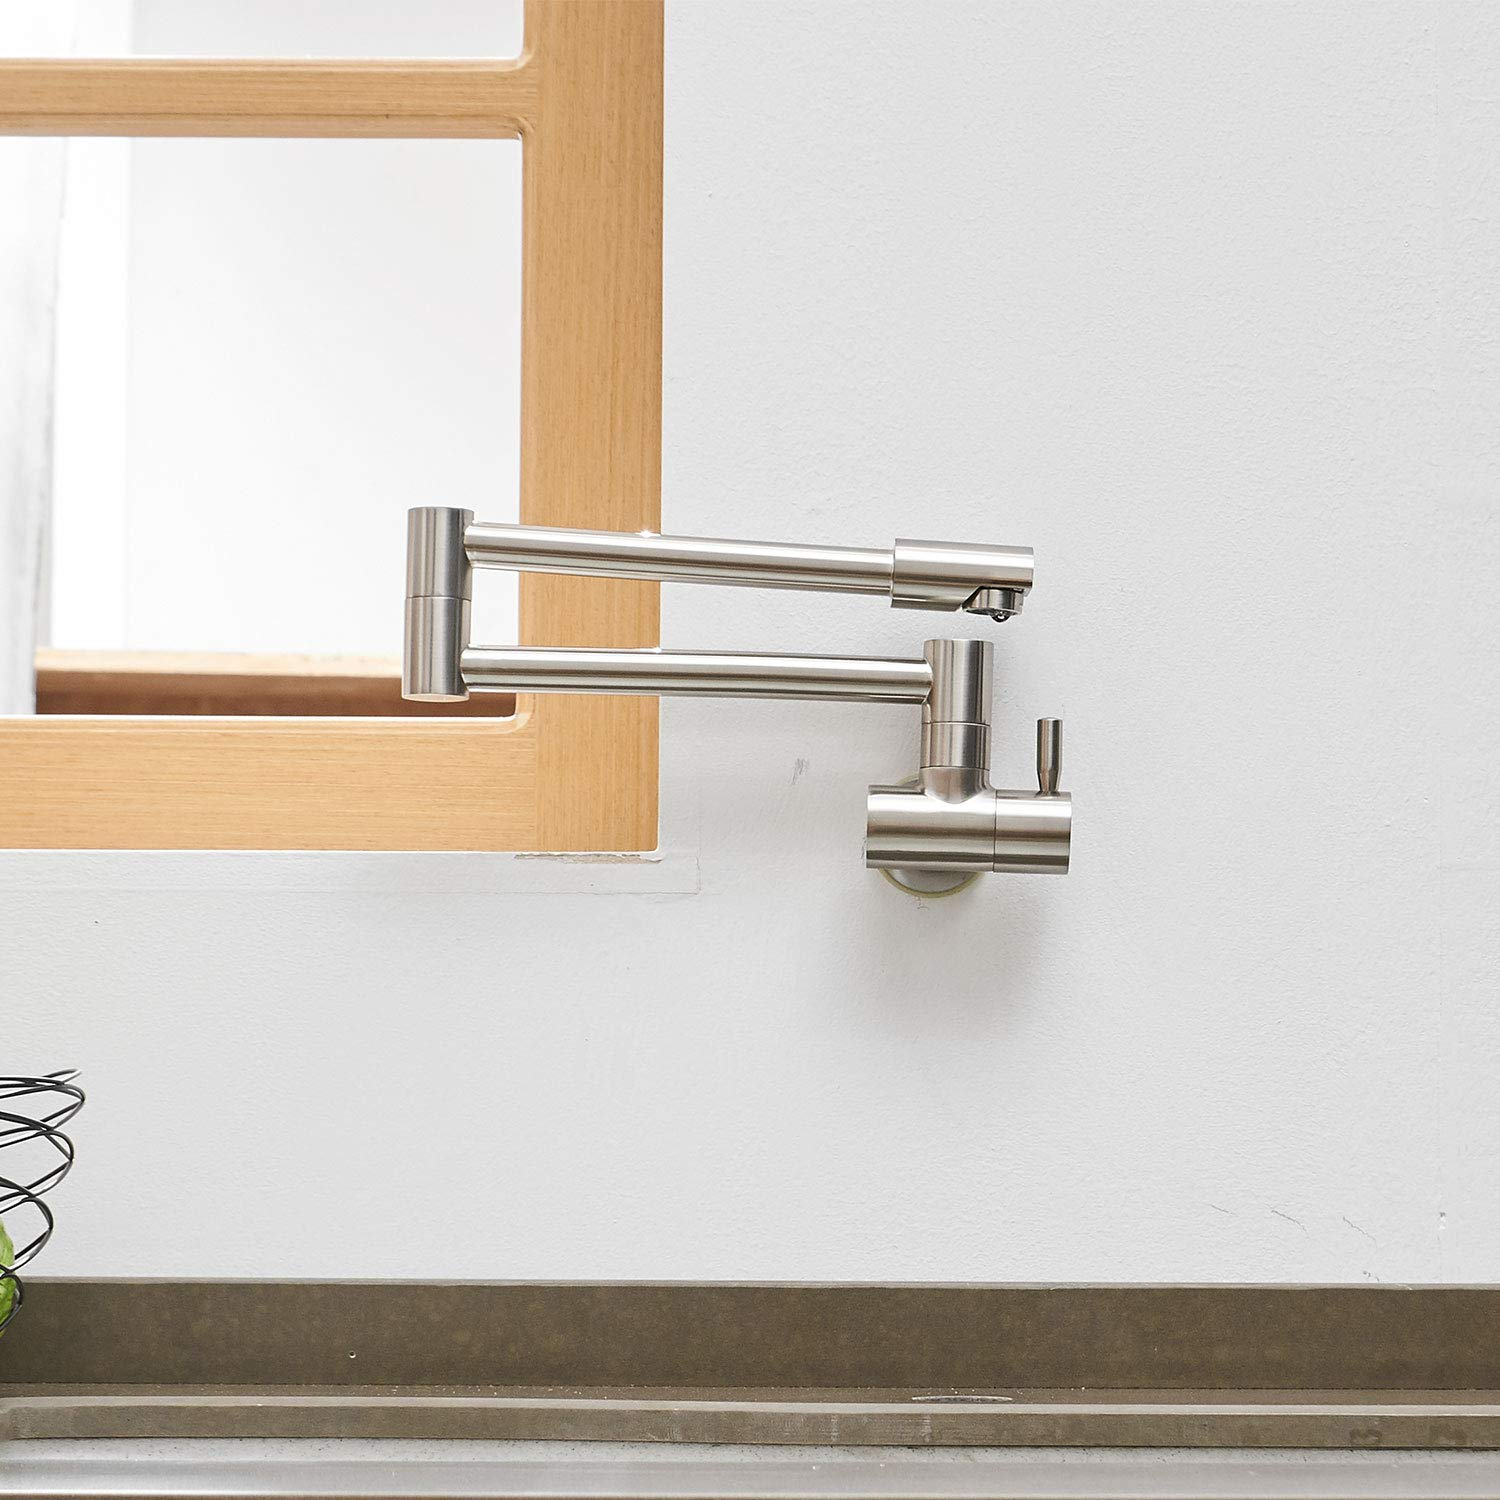 Aquafaucet Wall Mounted Pot Filler Kitchen Faucet With Double Joint Swing Arm Brushed Nickel by Aquafaucet